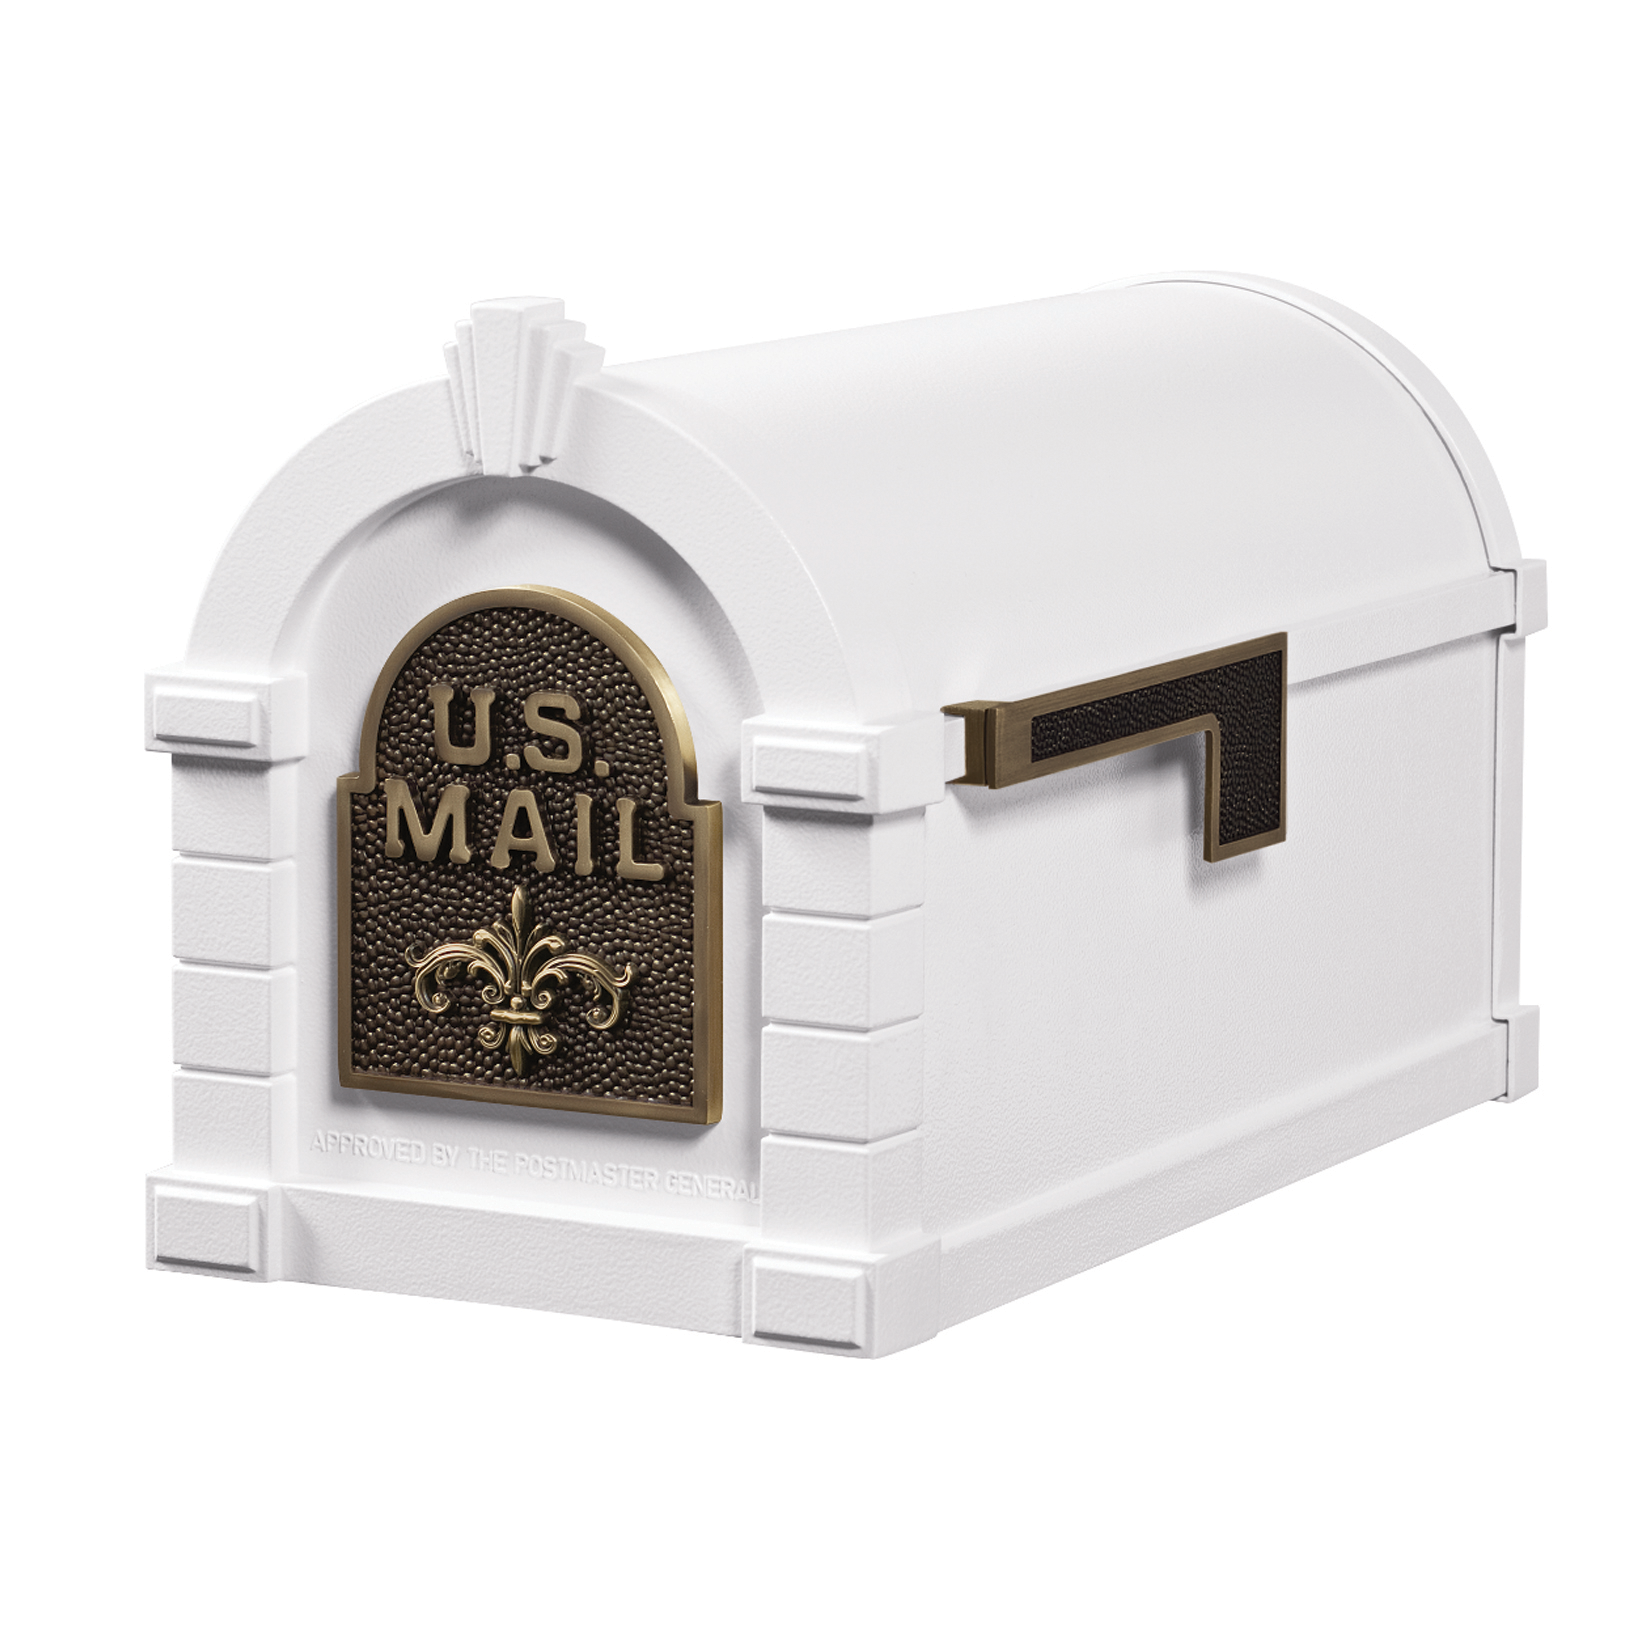 Gaines Fleur De Lis Keystone Mailboxes - White with Antique Bronze